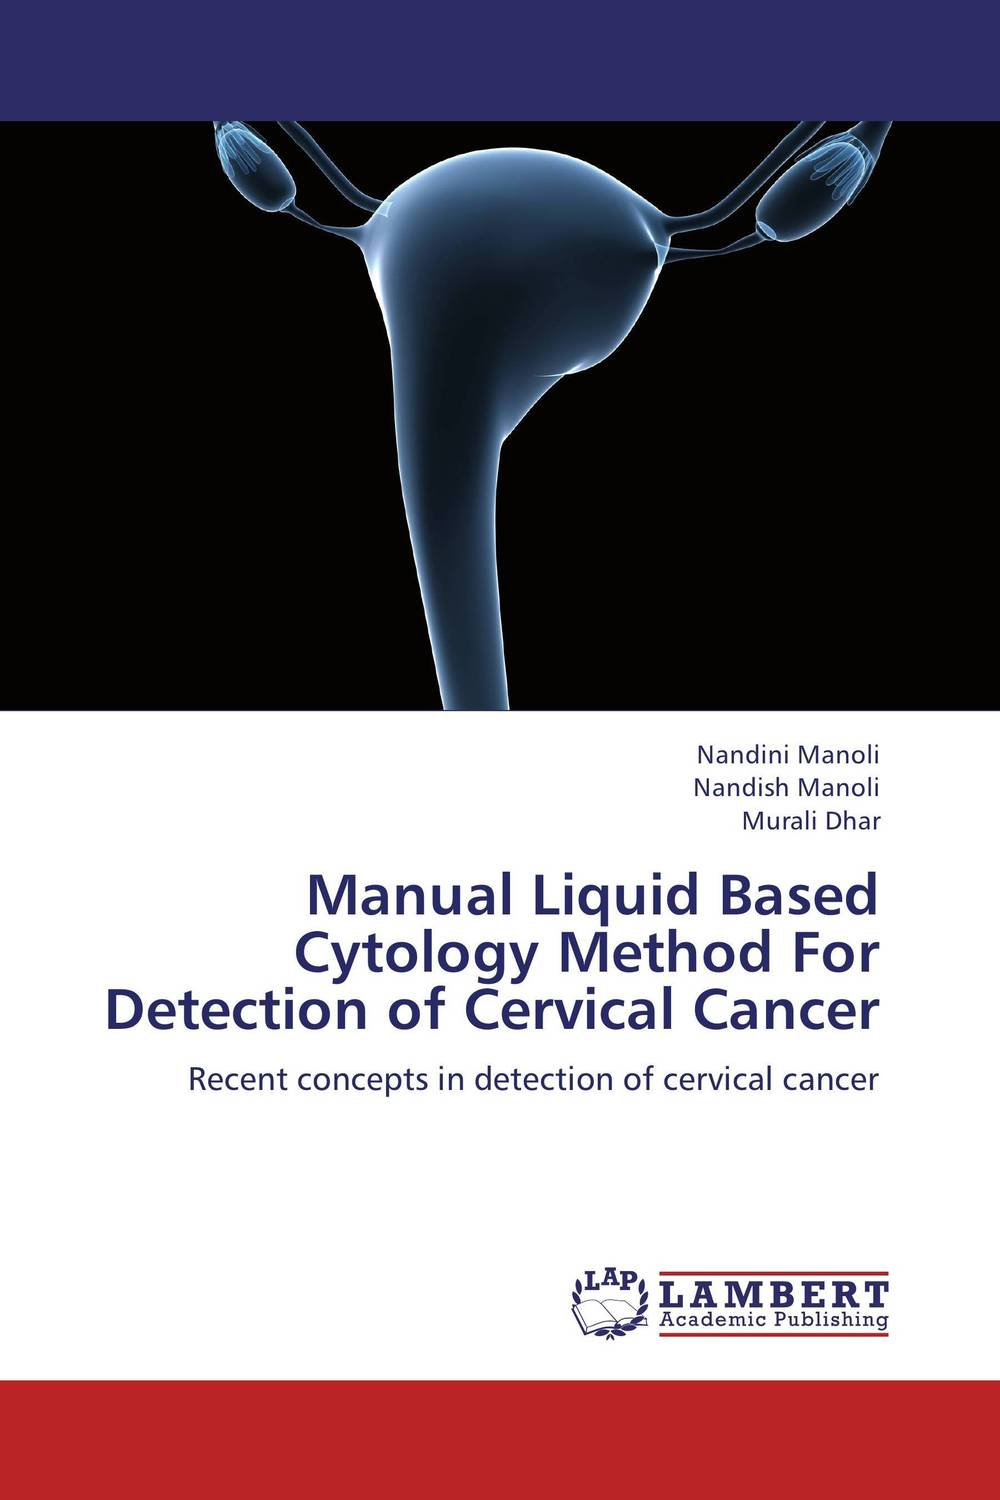 Manual Liquid Based Cytology Method For Detection of Cervical Cancer late stage diagnosis of cervical cancer